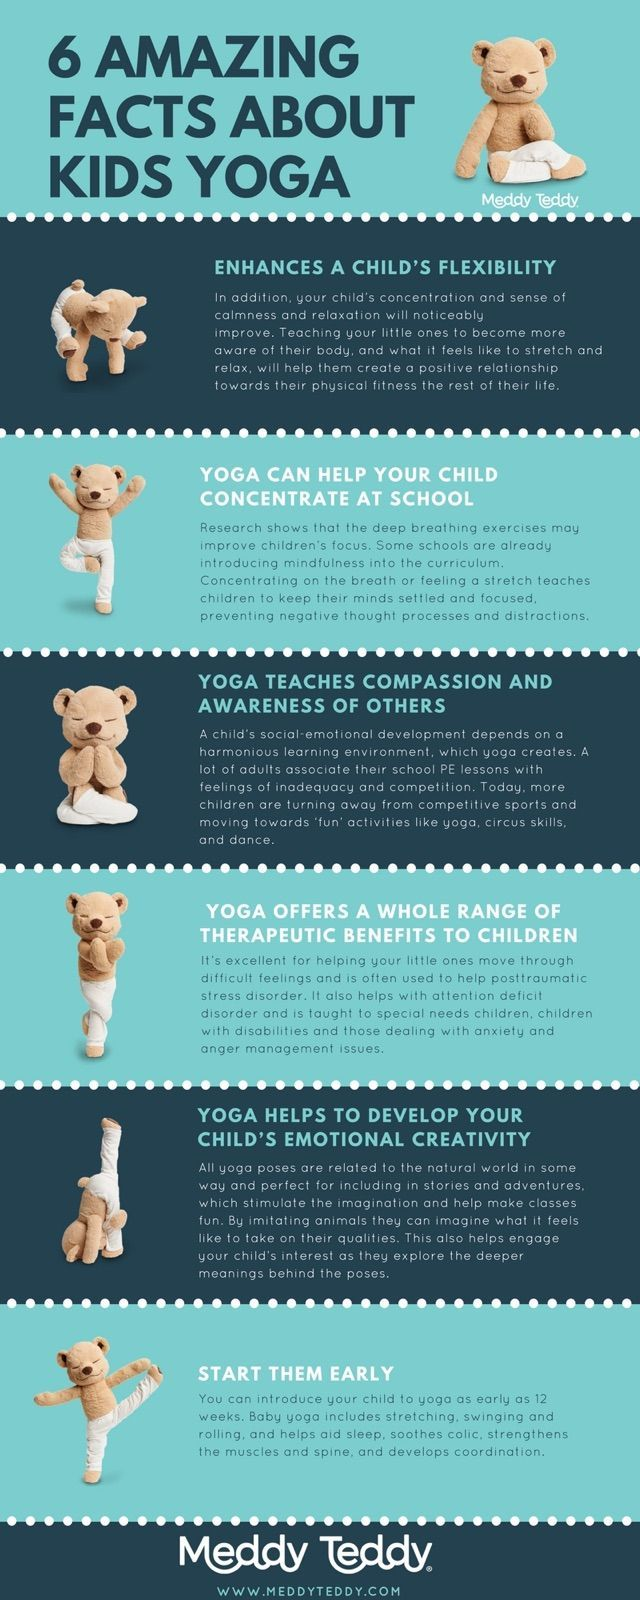 Why She Your Little Cub Practice Yoga Check Out All The Amazing Benefits Of Kids For More Information Go To Meddyteddy